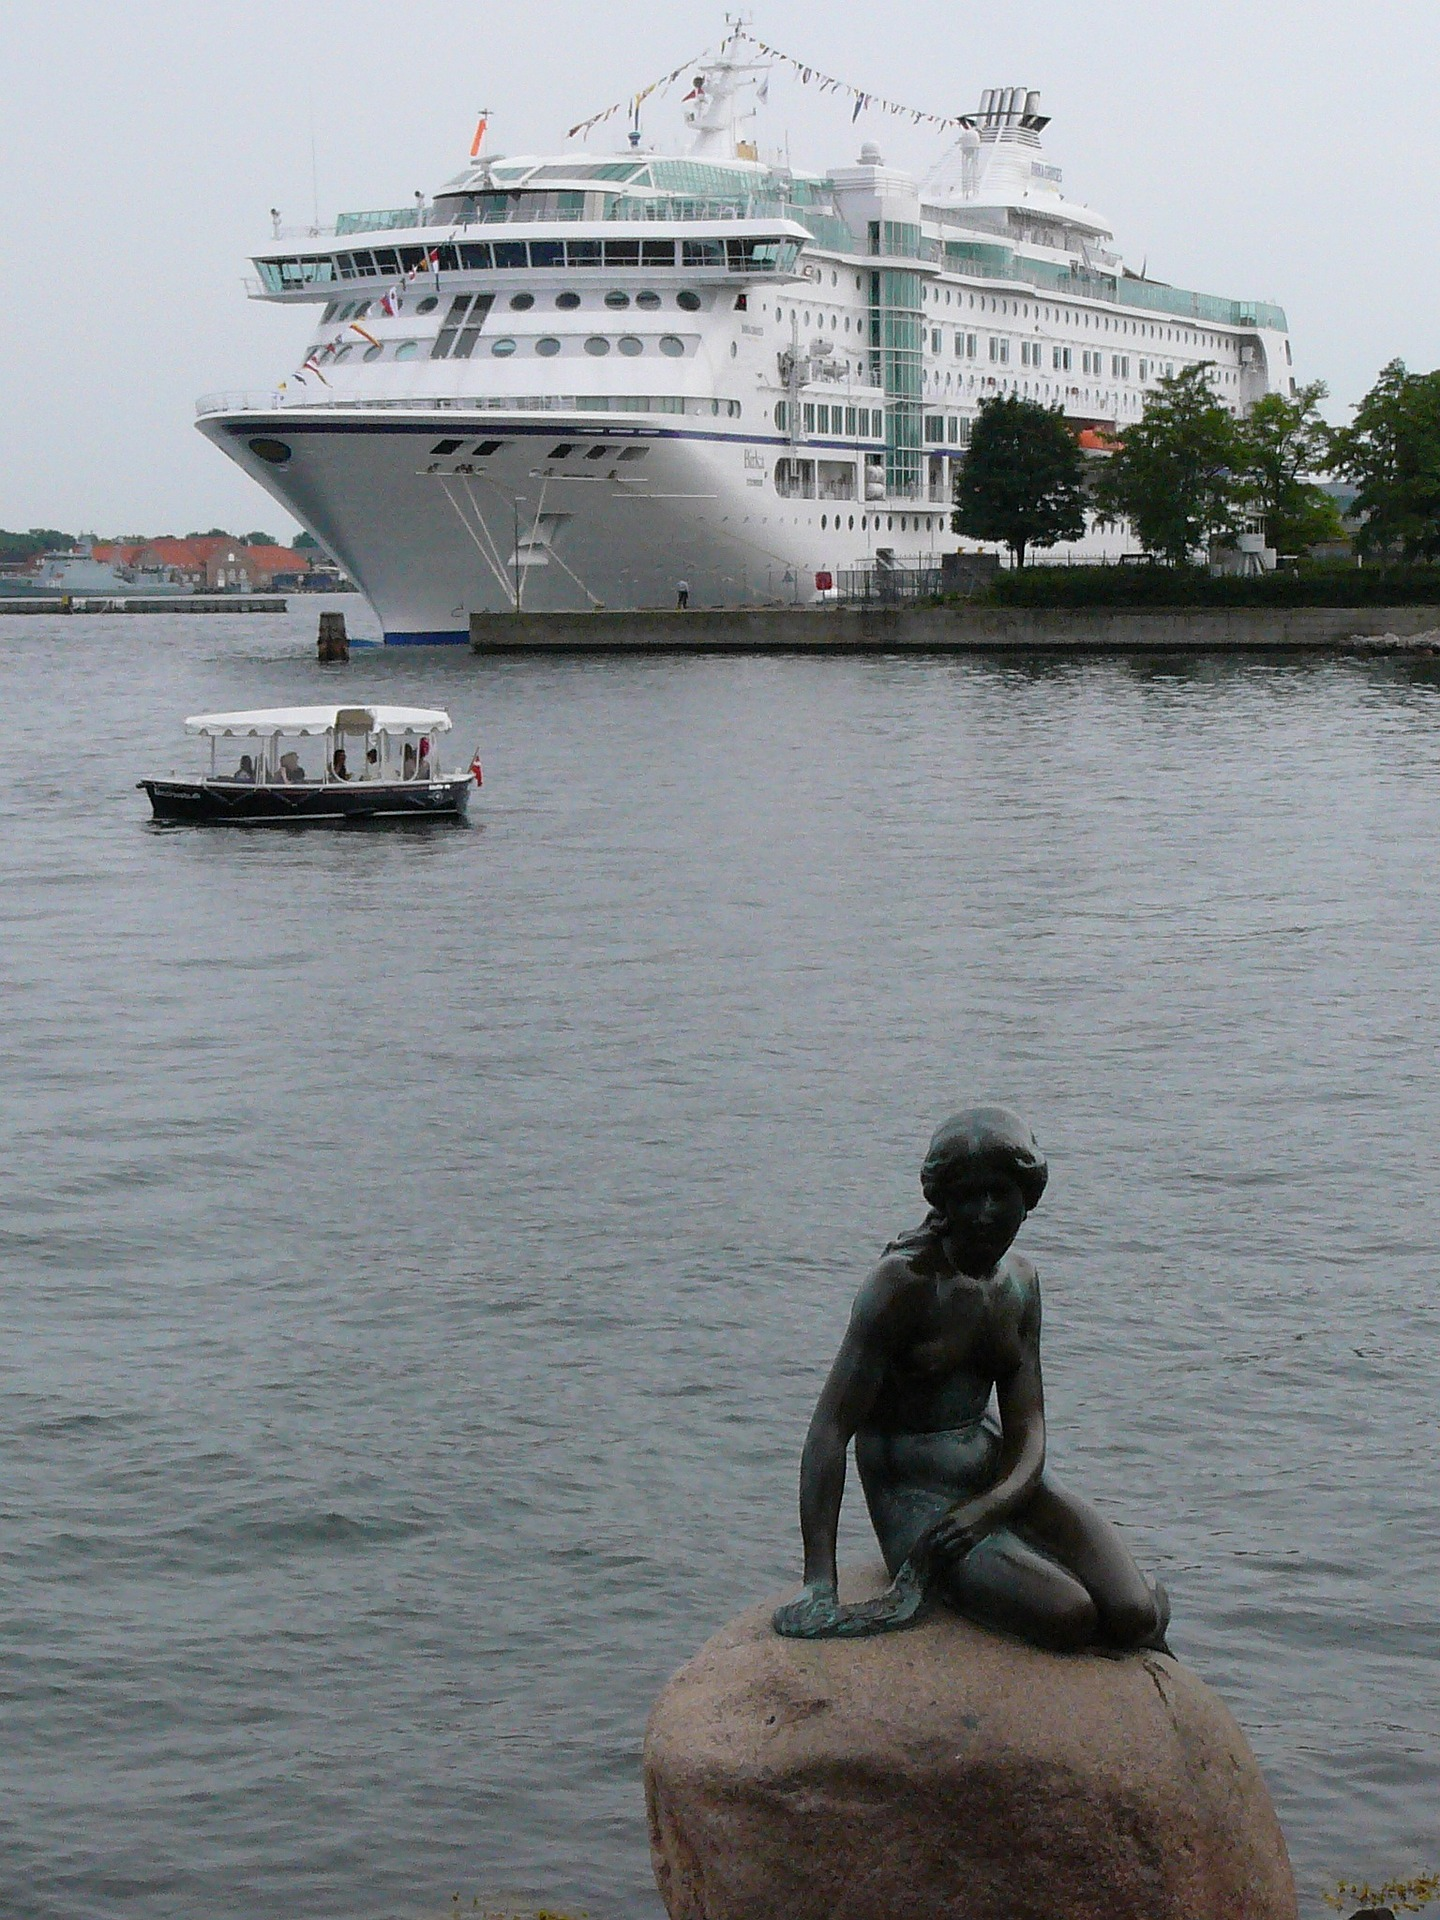 Cruise ship and Little Mermaid statue, Copenhagen, Denmark